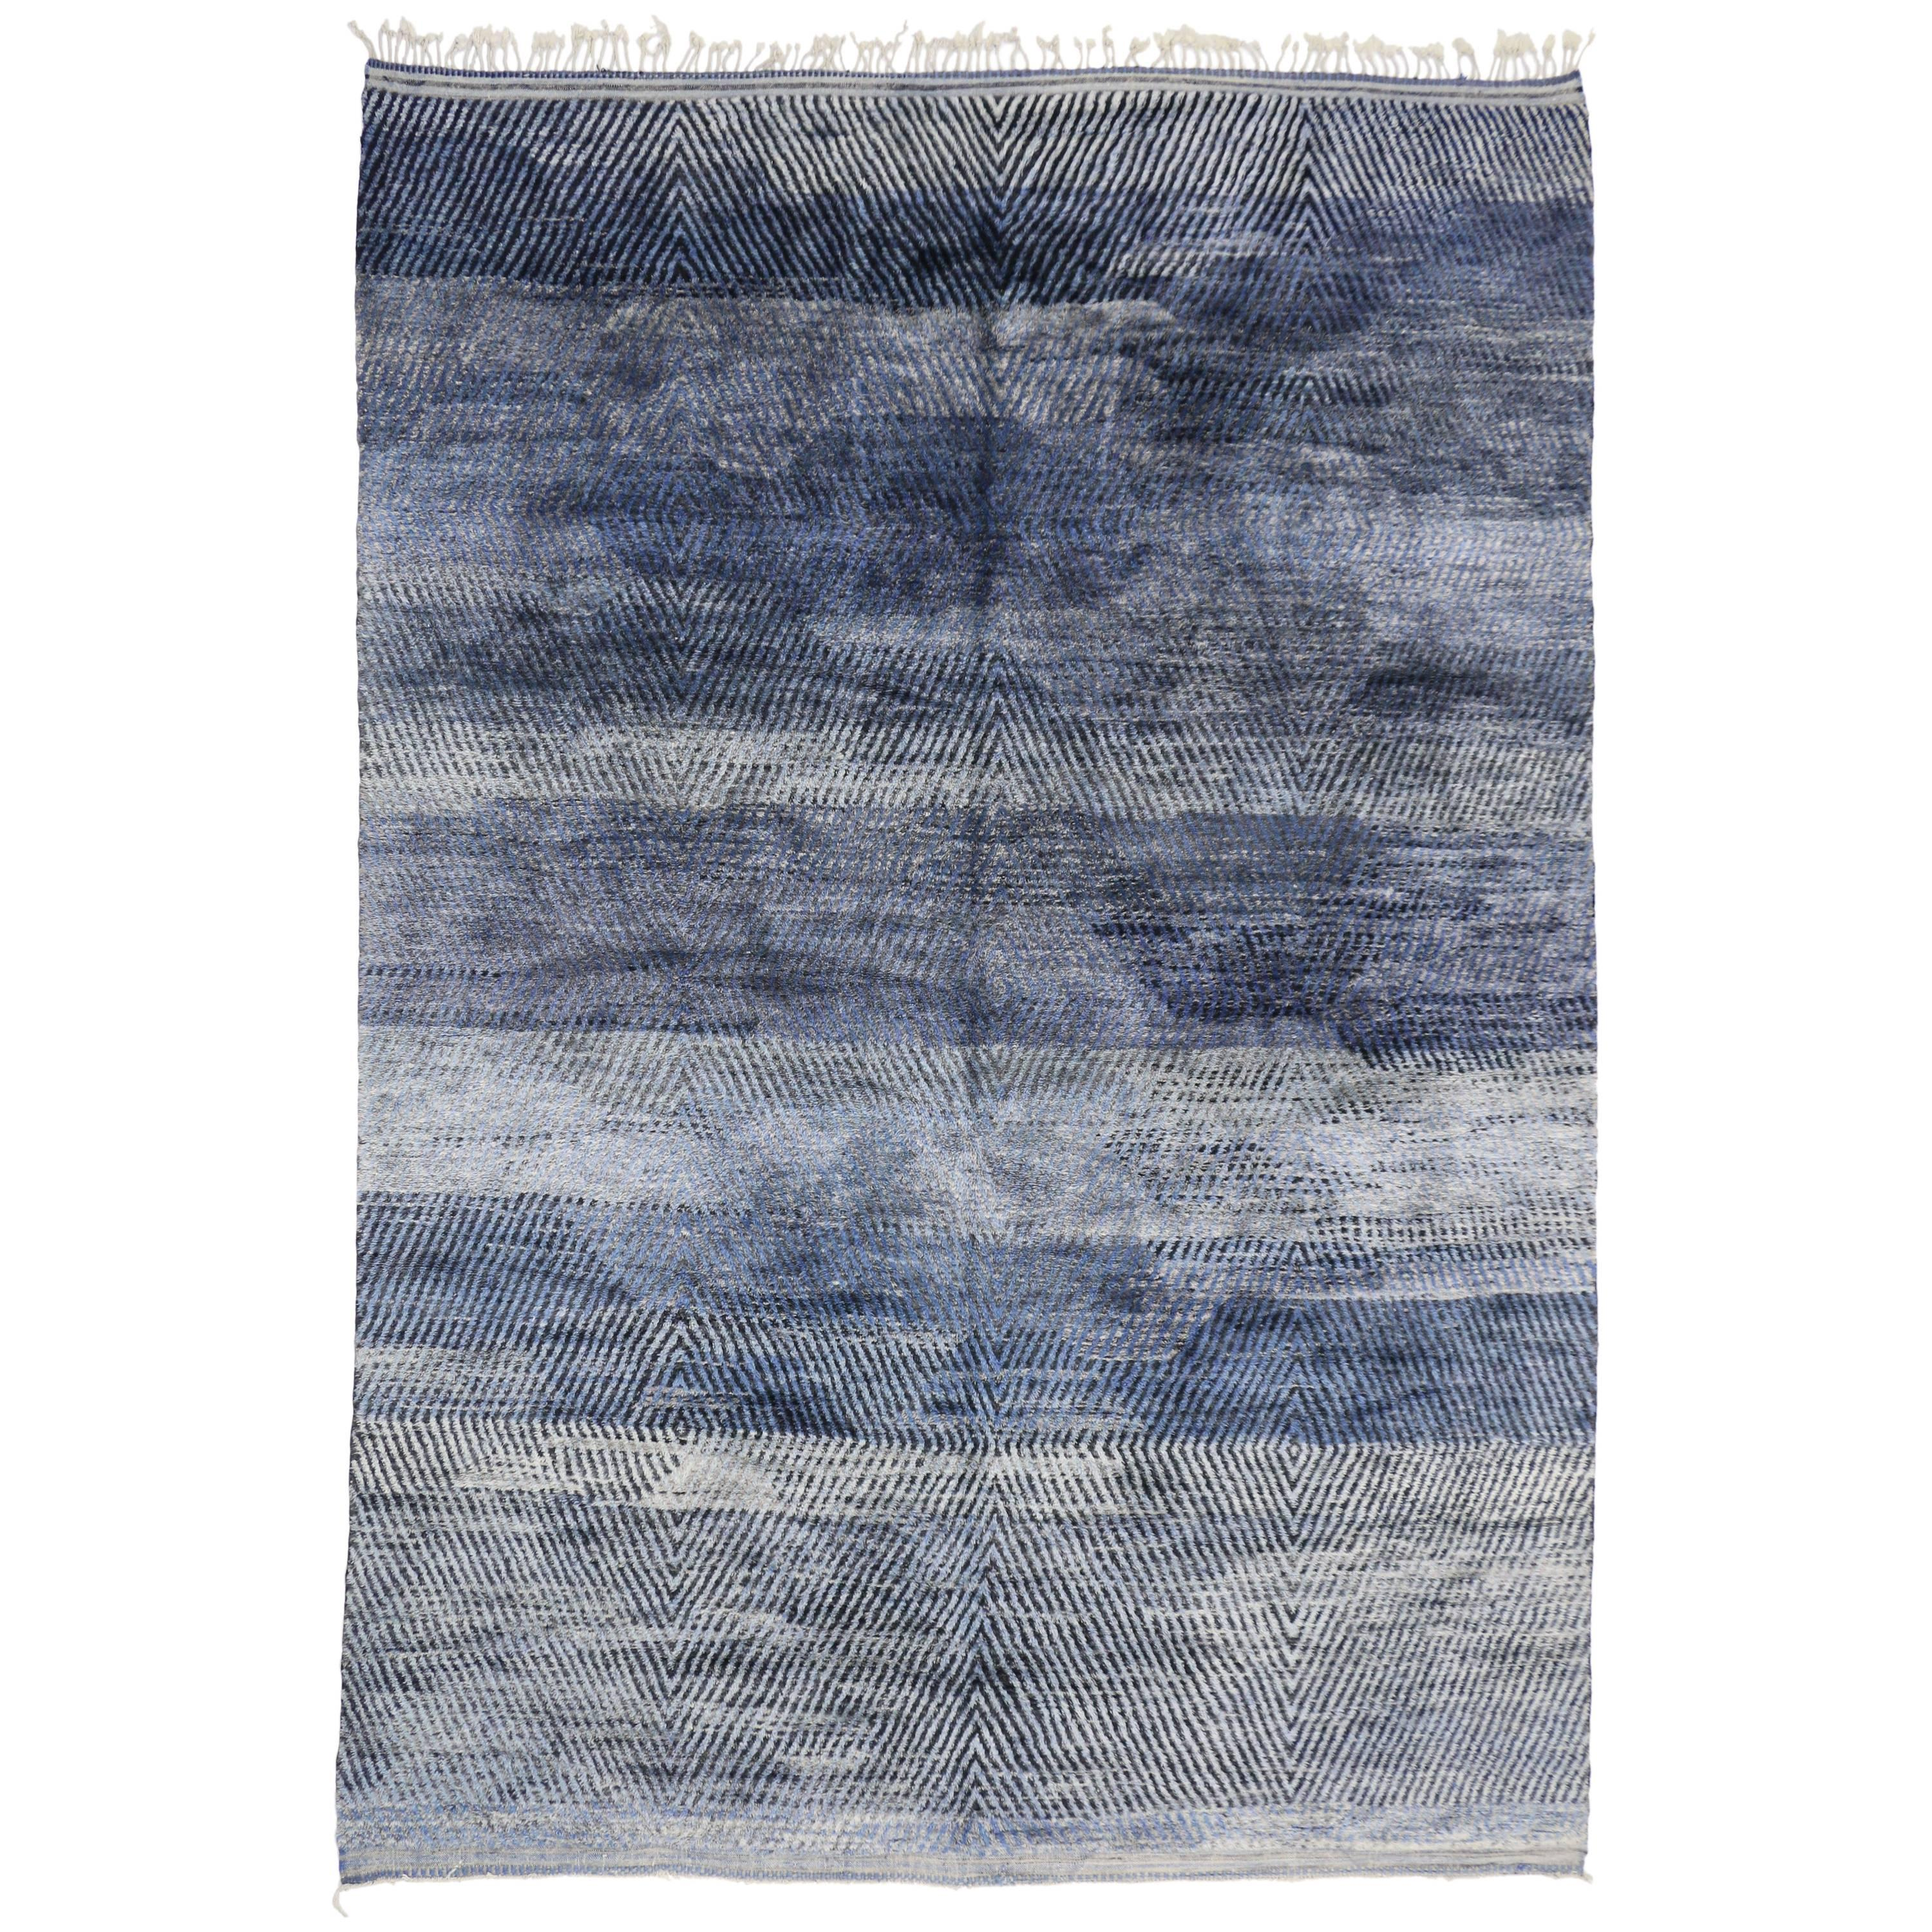 New Contemporary Berber Moroccan Rug with Modern Style